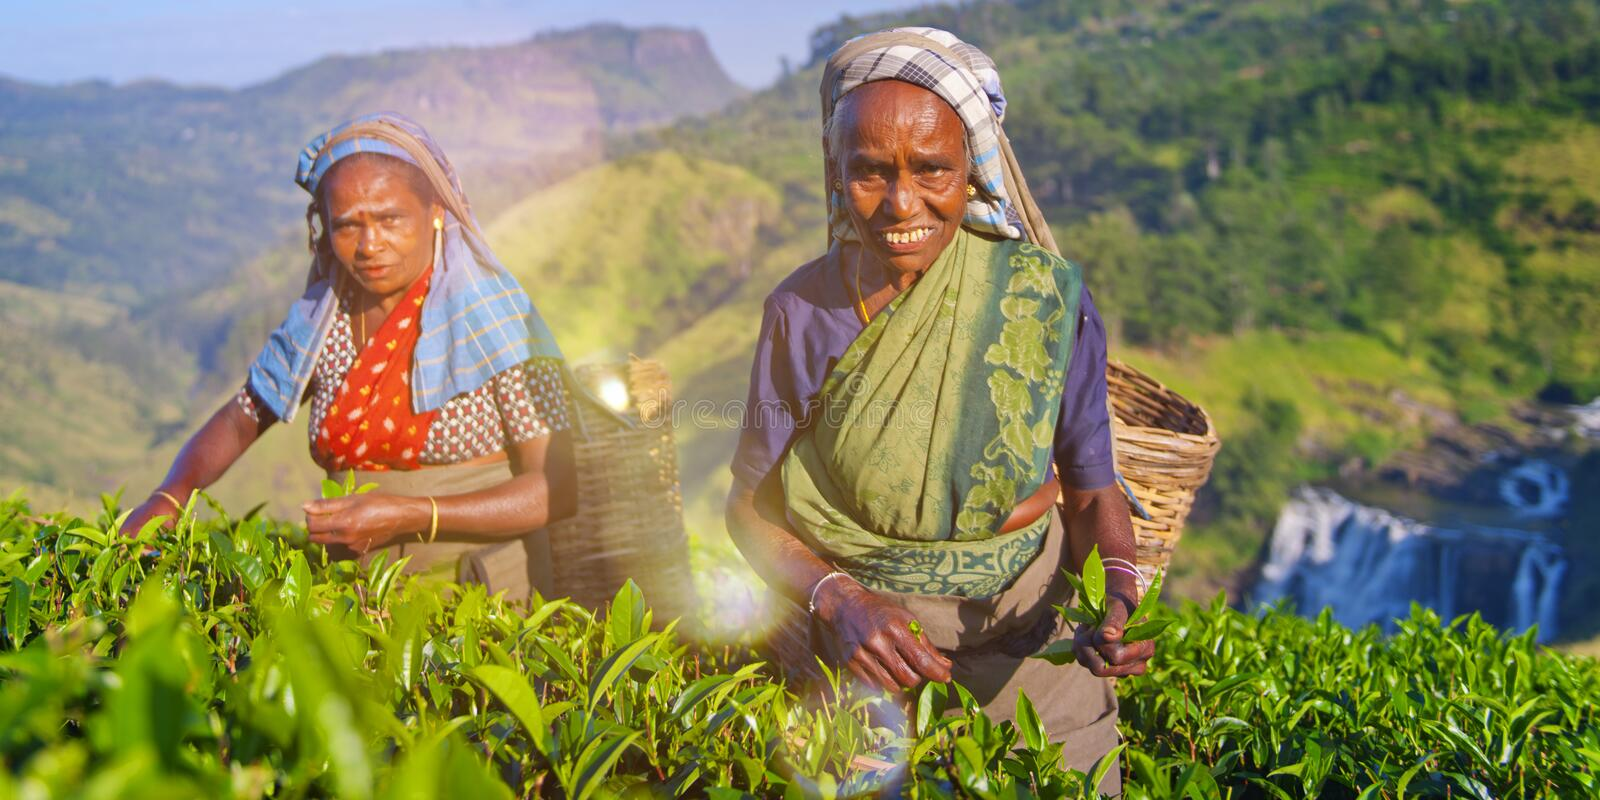 Two Tea Pickers Smile As They Pick Leaves Concept royalty free stock image